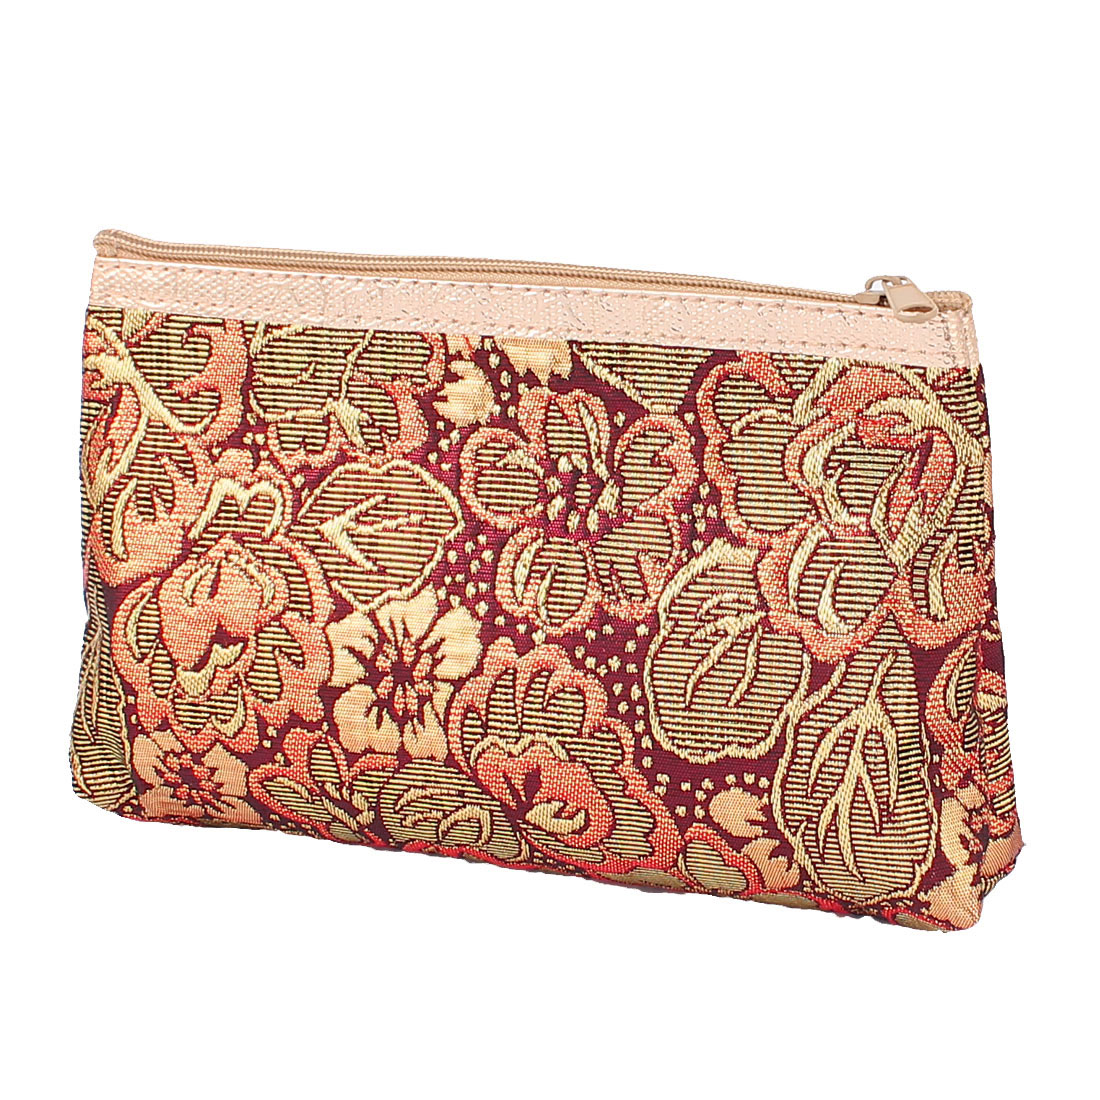 Gold Tone Red Embroidery Travel Cosmetic Bag Makeup Case Toiletry Organizer